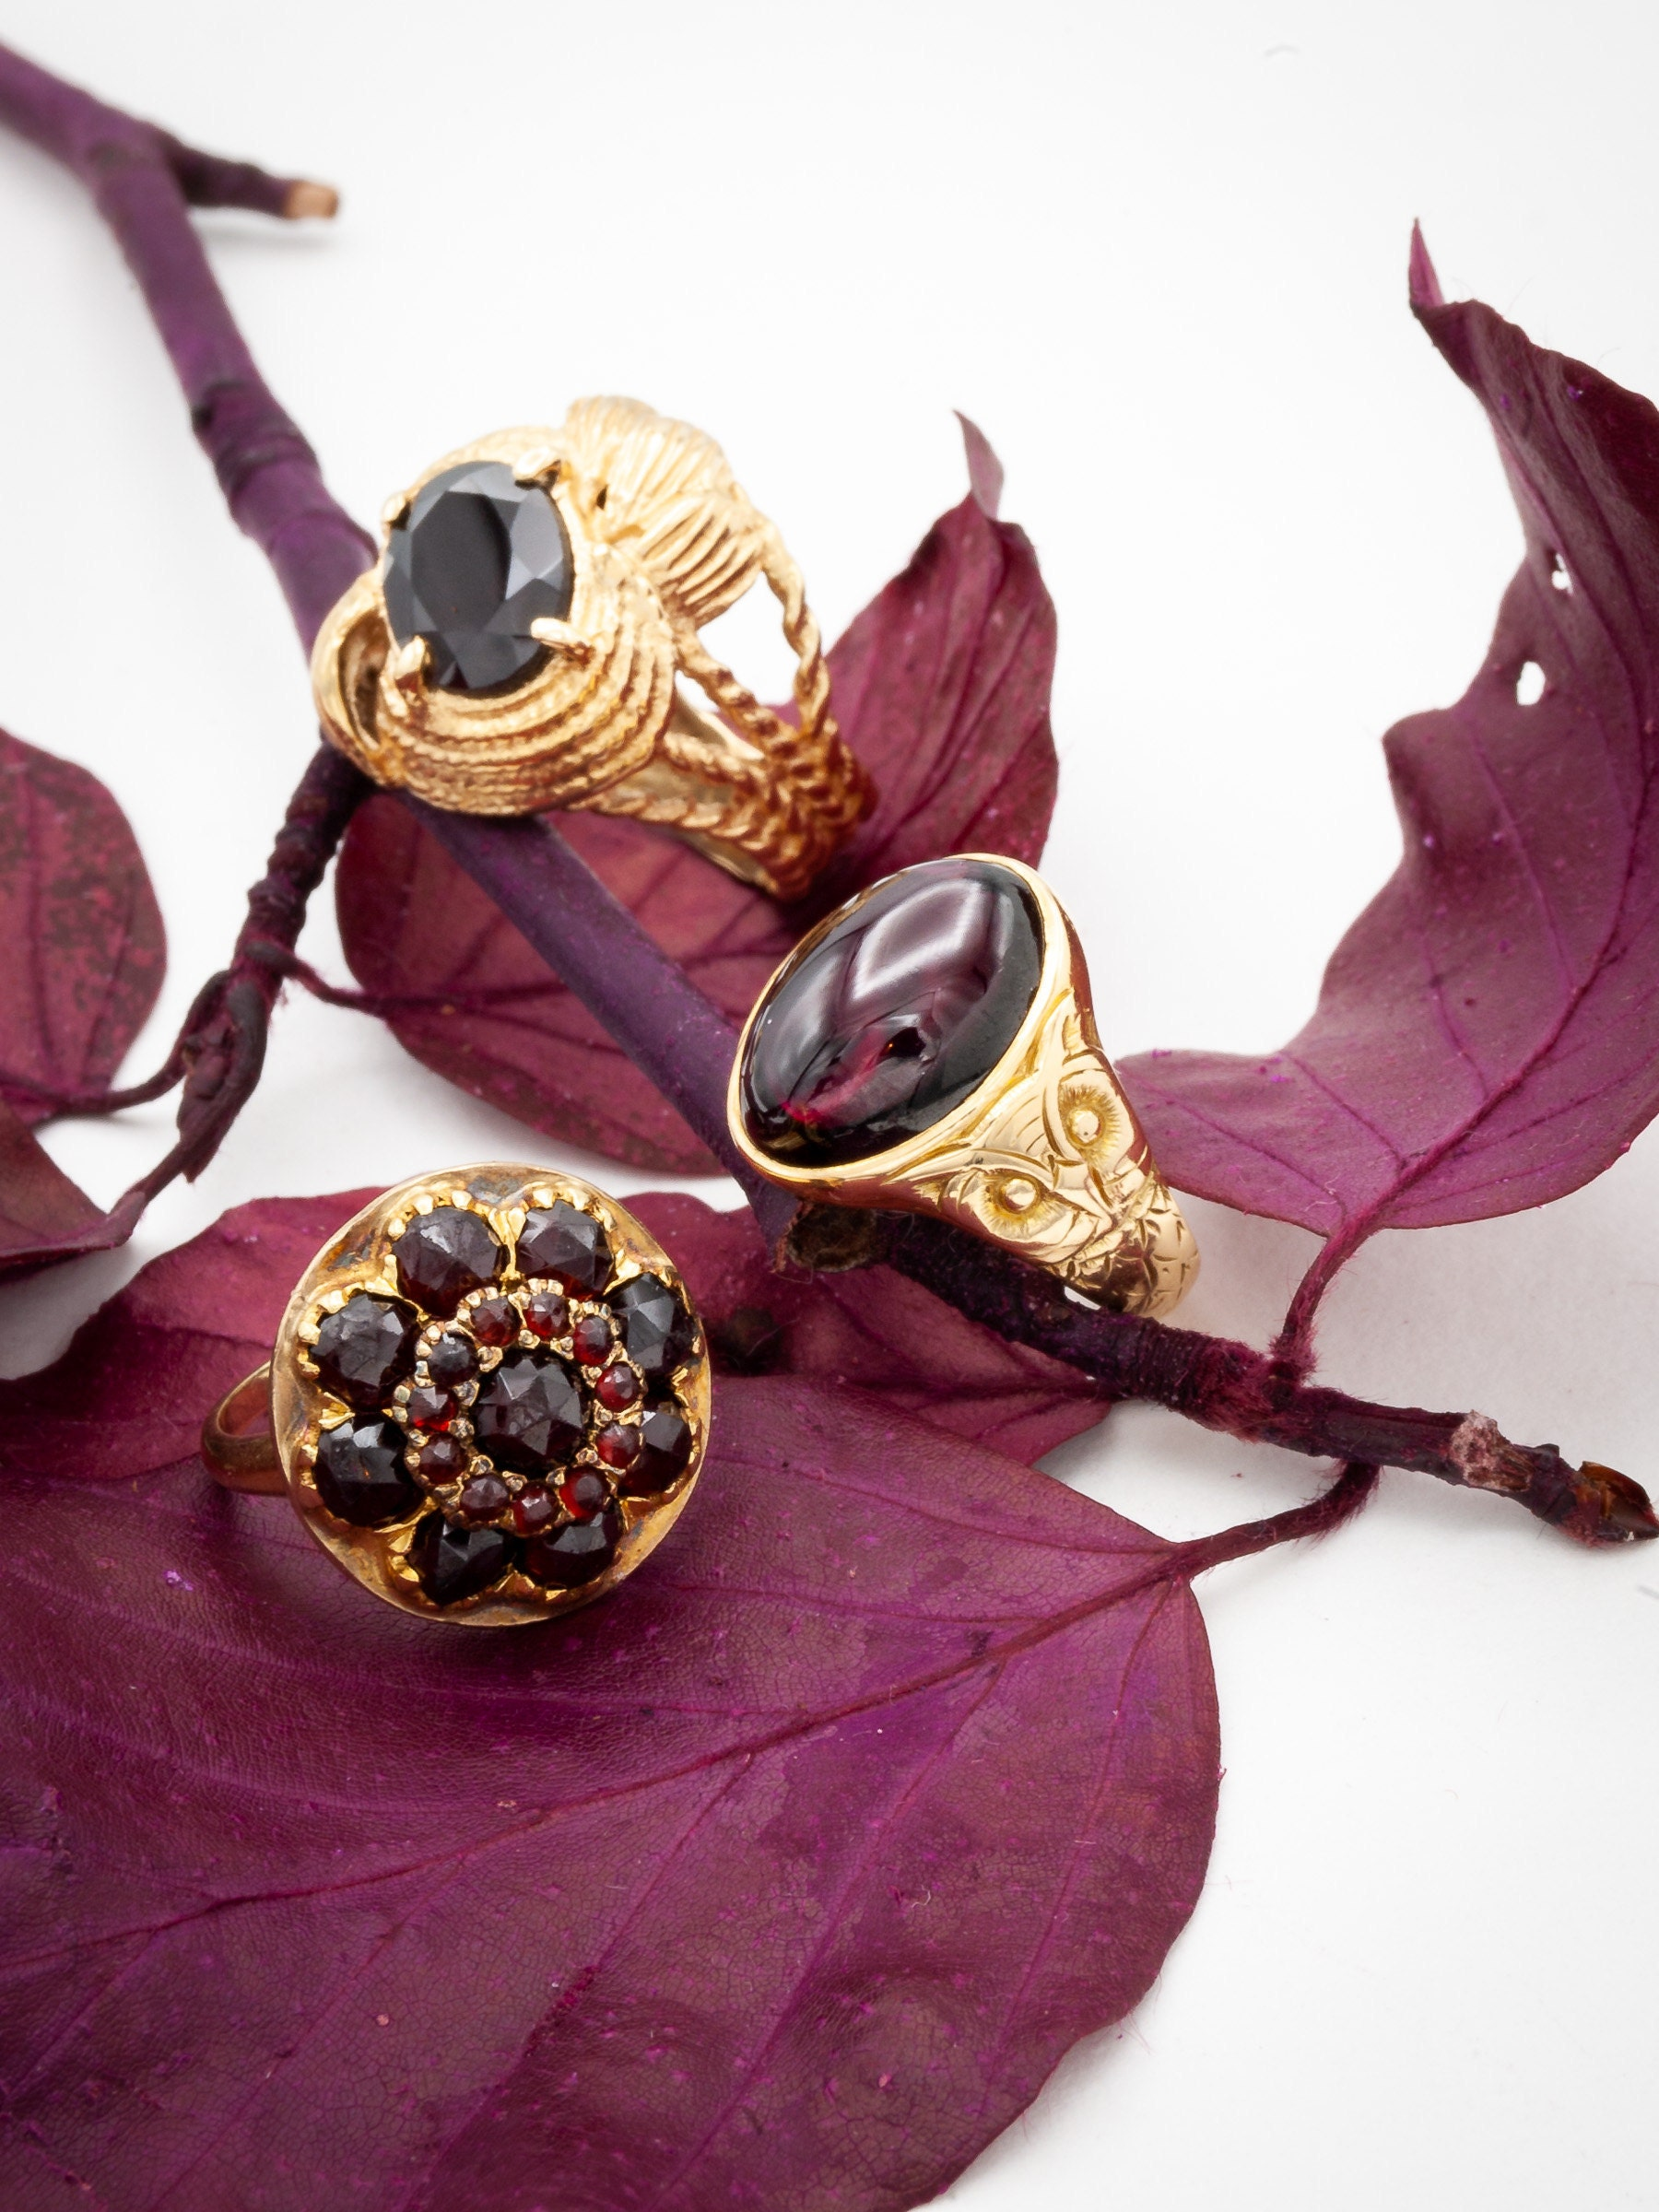 Three Garnet and Gold Vintage Rings with Cabochon and Faceted gemstones on Wine Red Leaves